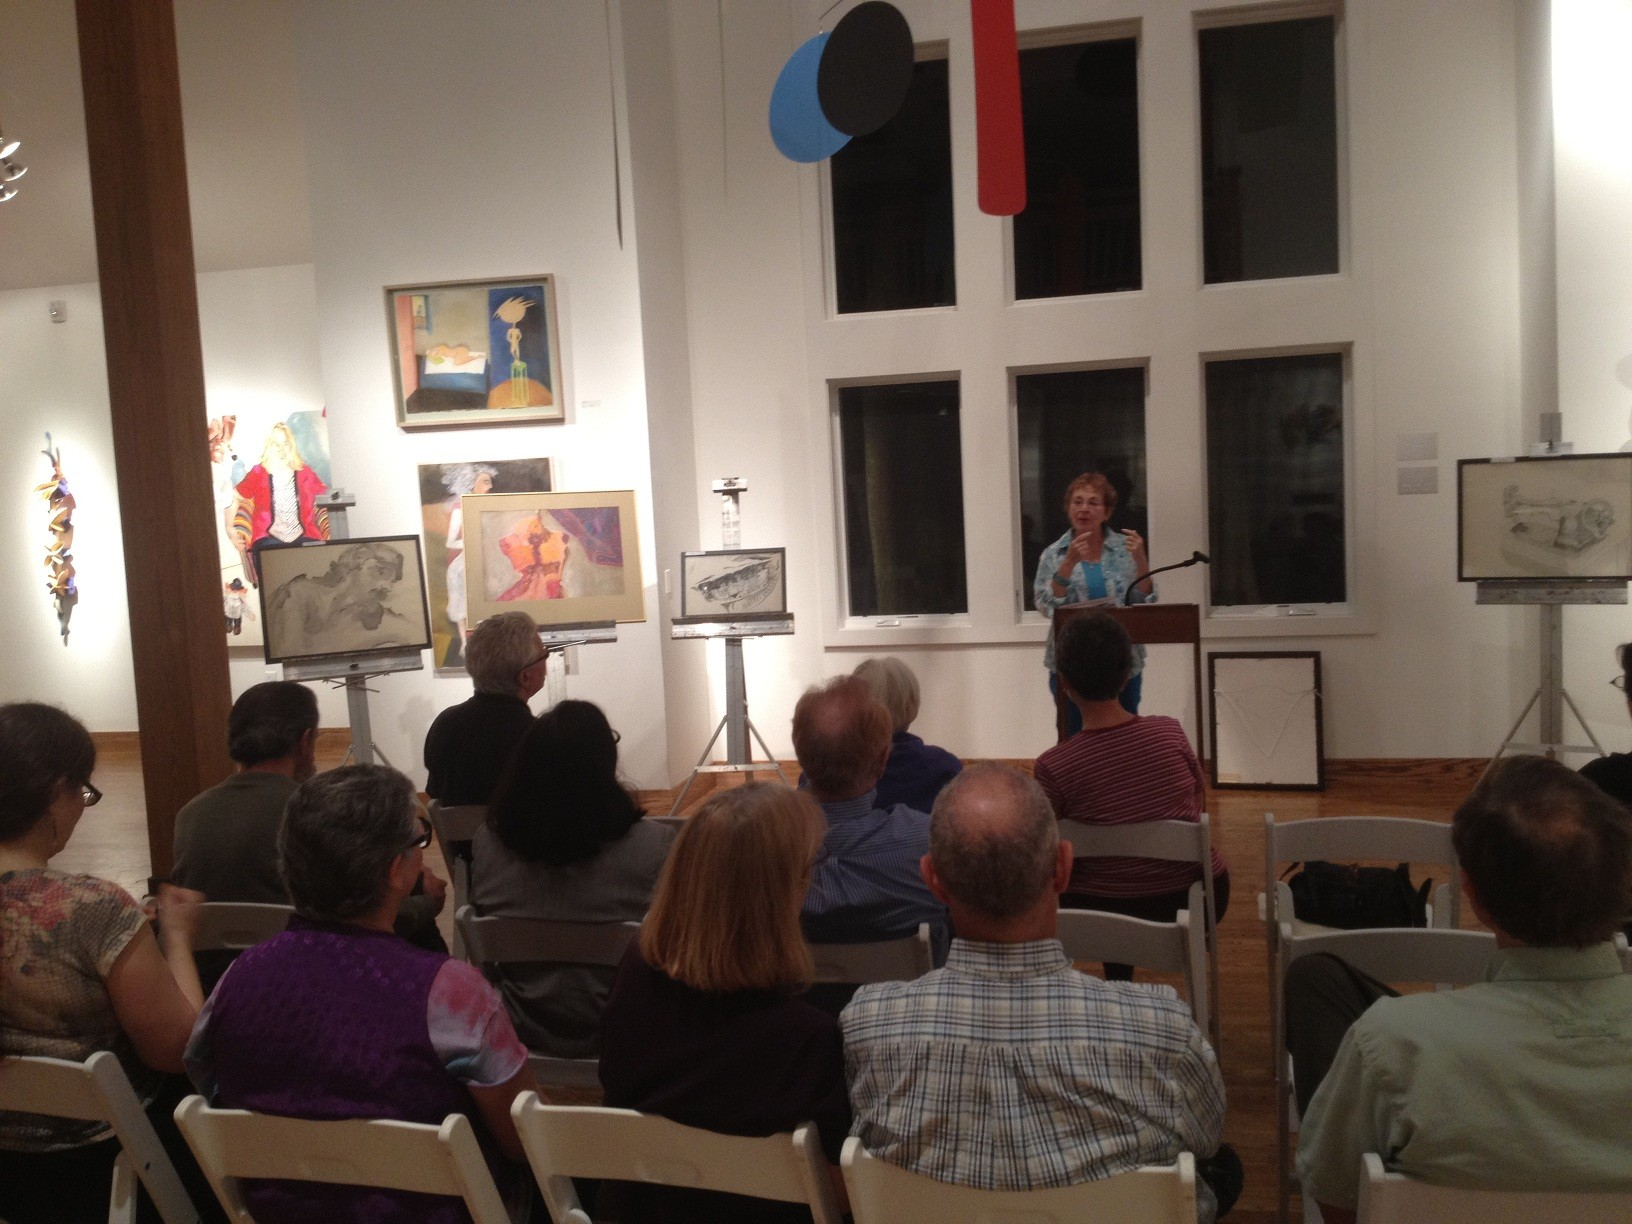 Betti Kahn at the Community Art Center